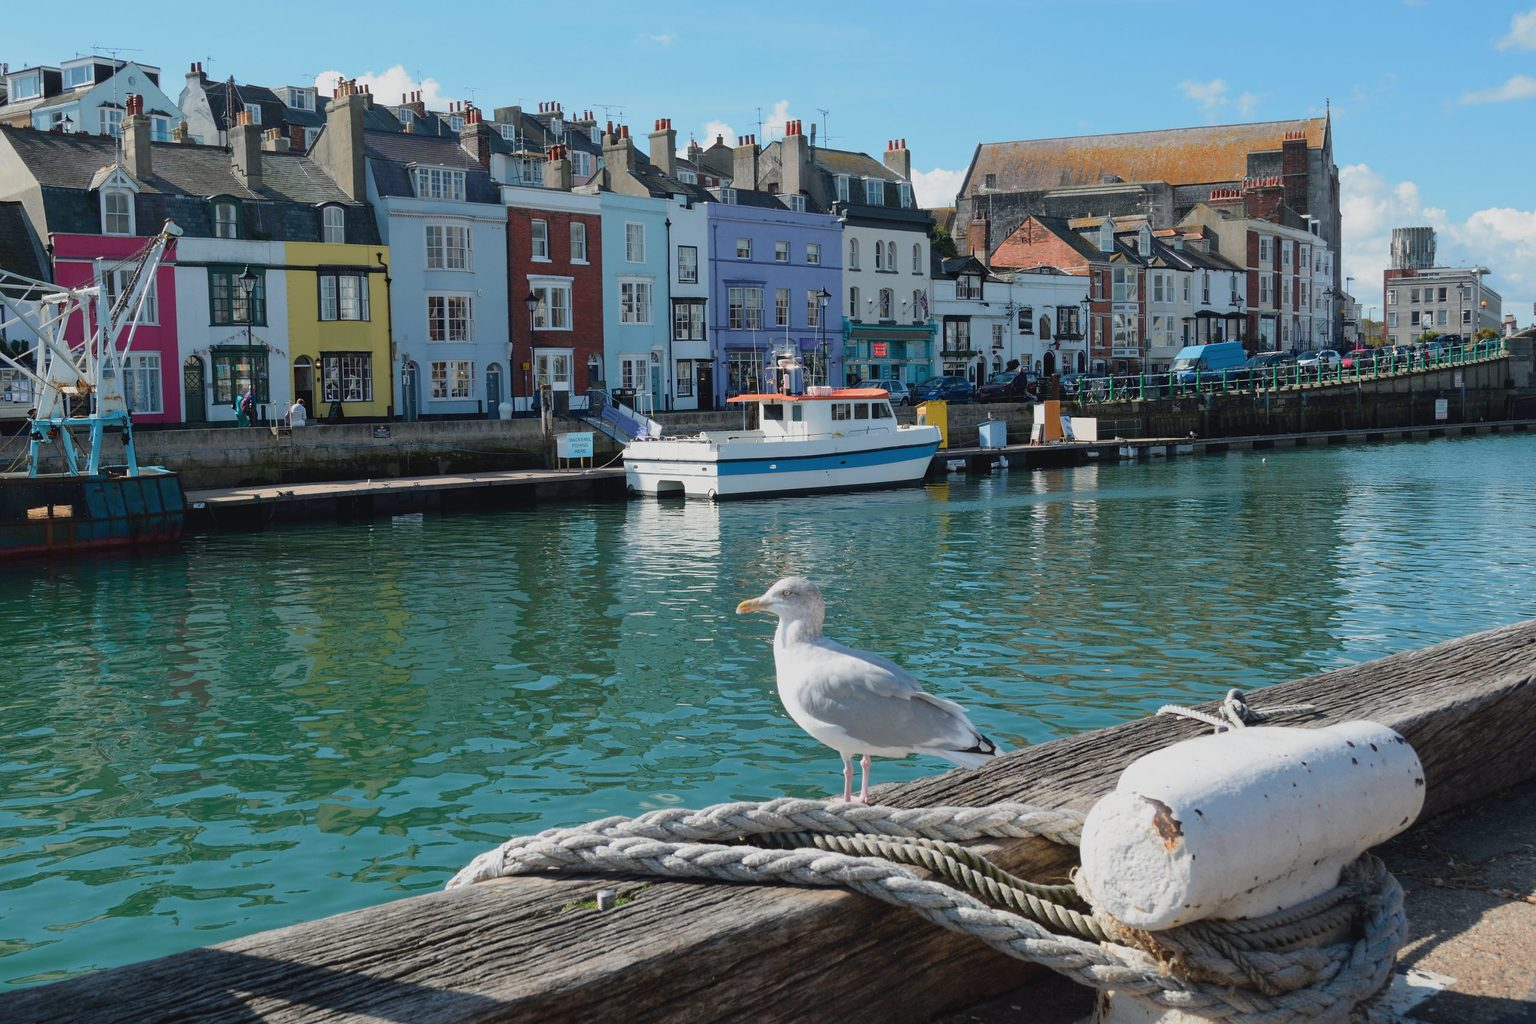 A Local's Guide to Weymouth Dorset